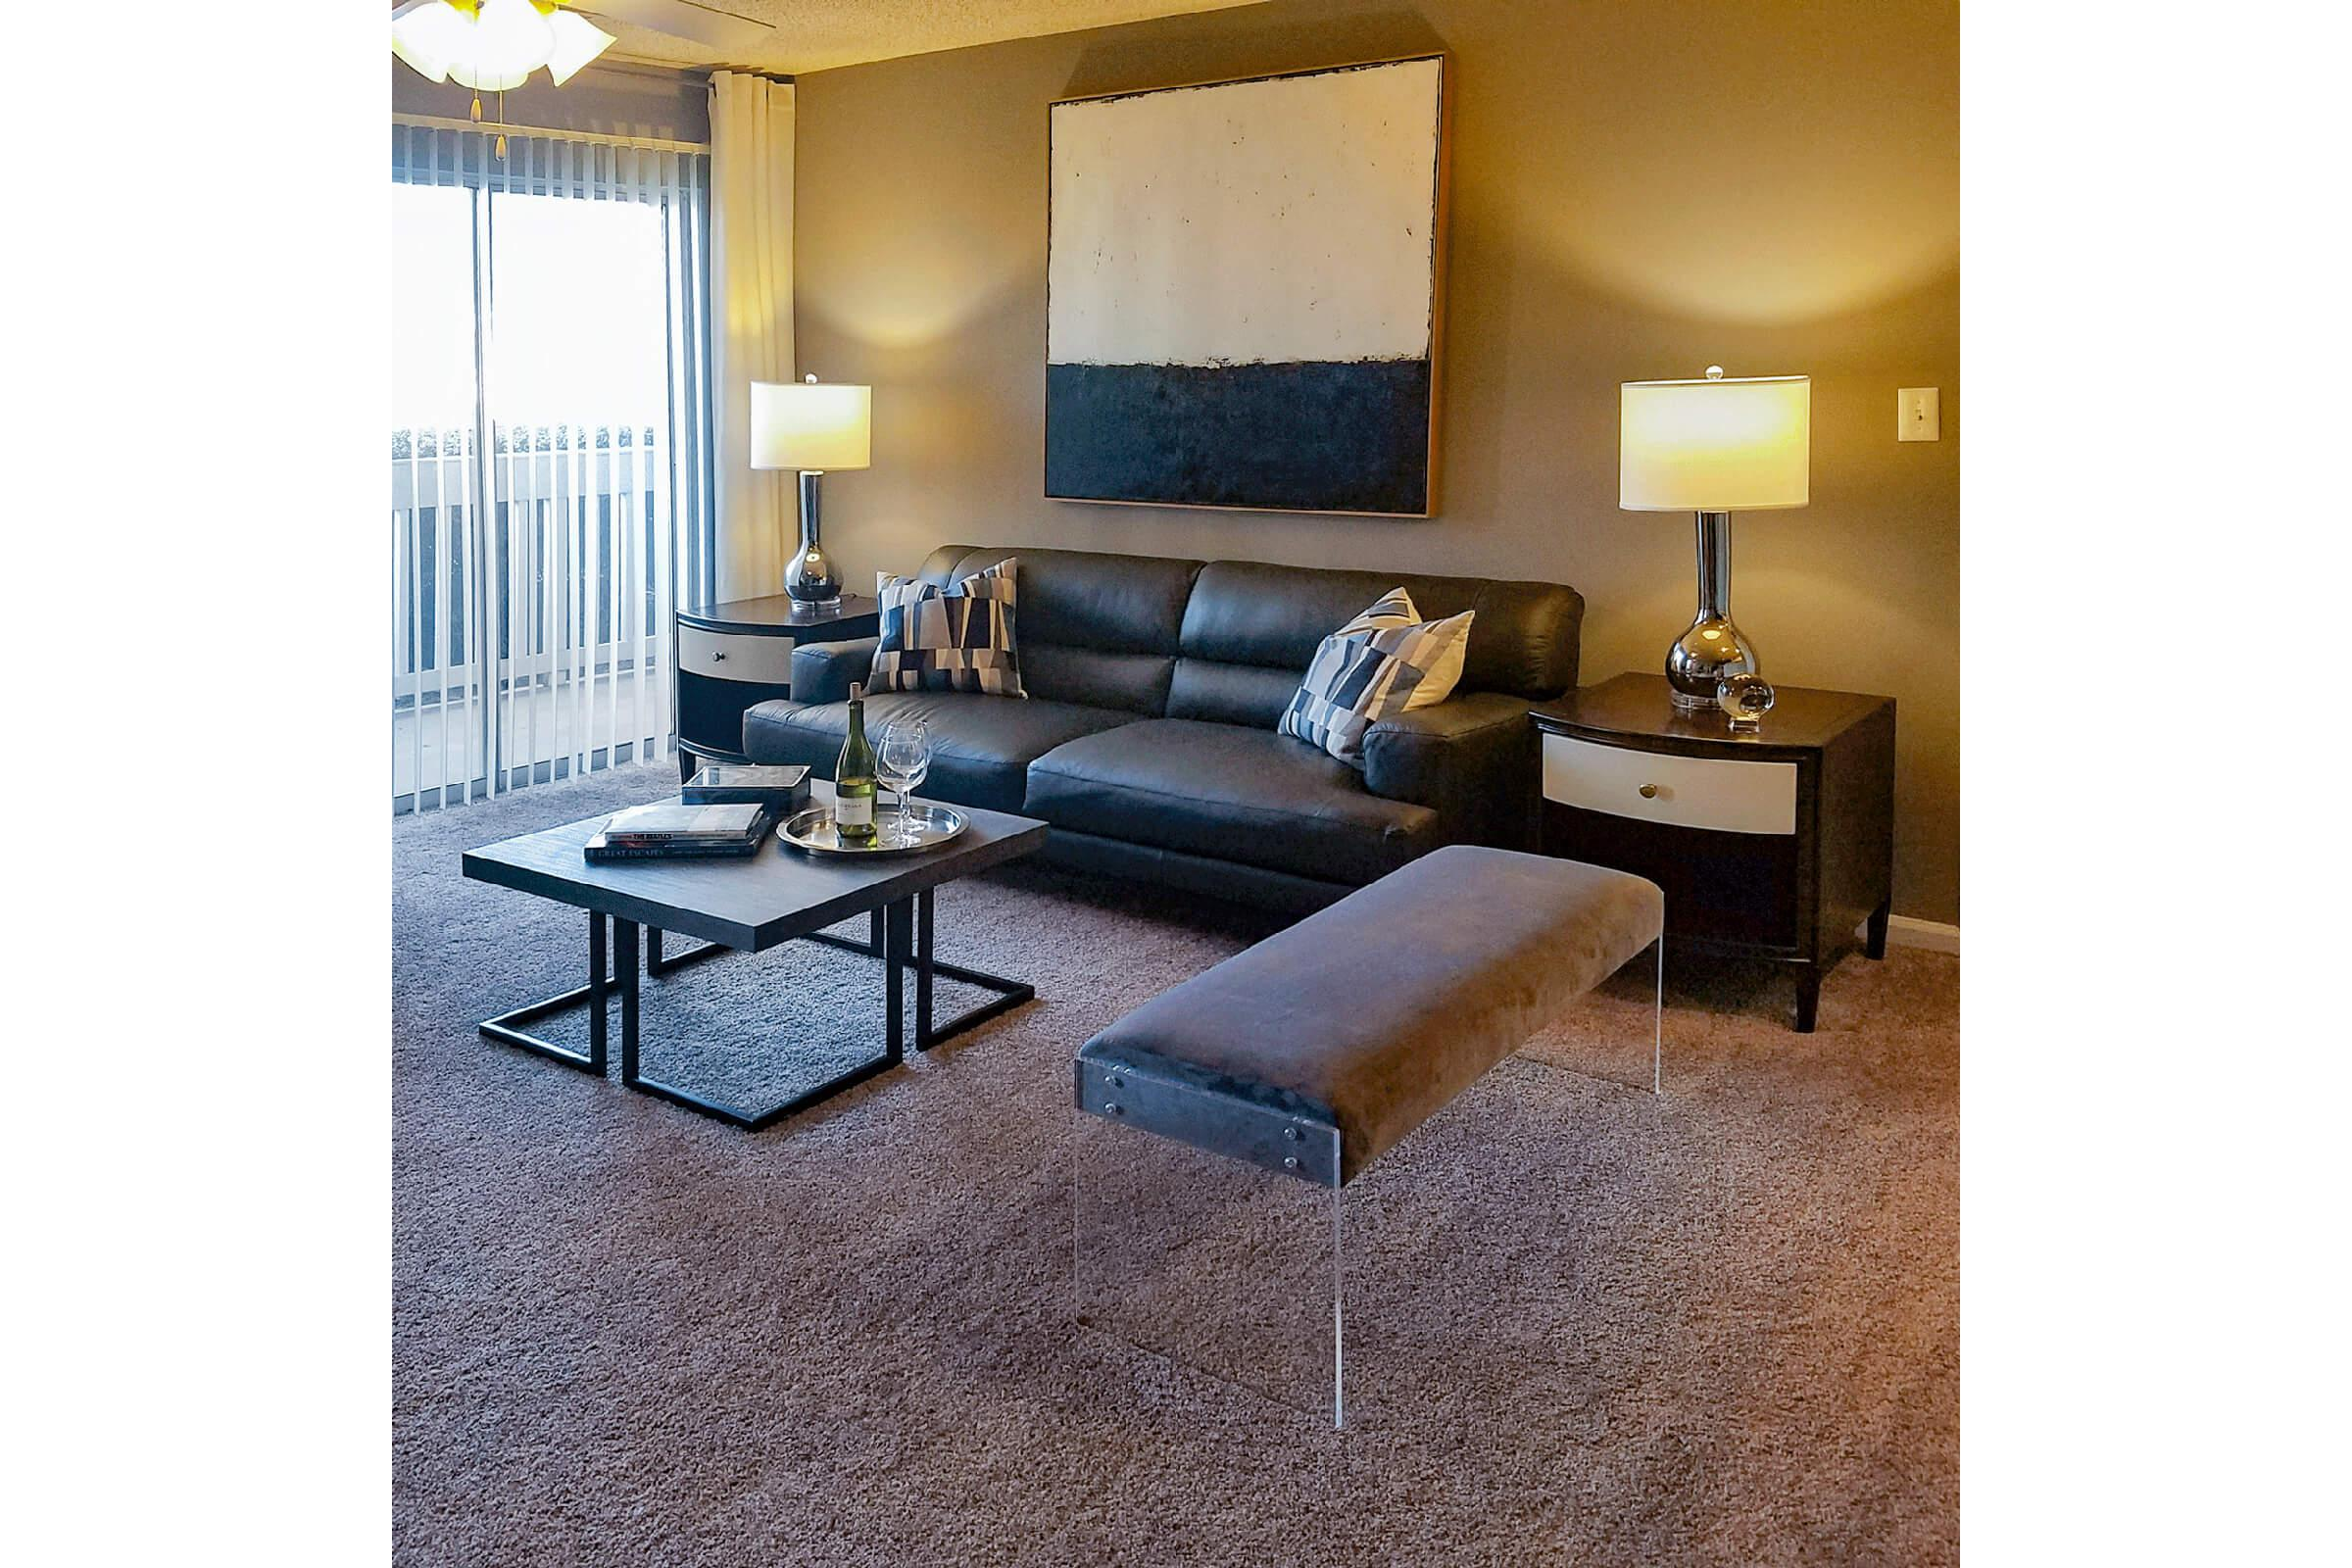 a living room filled with furniture and a lamp